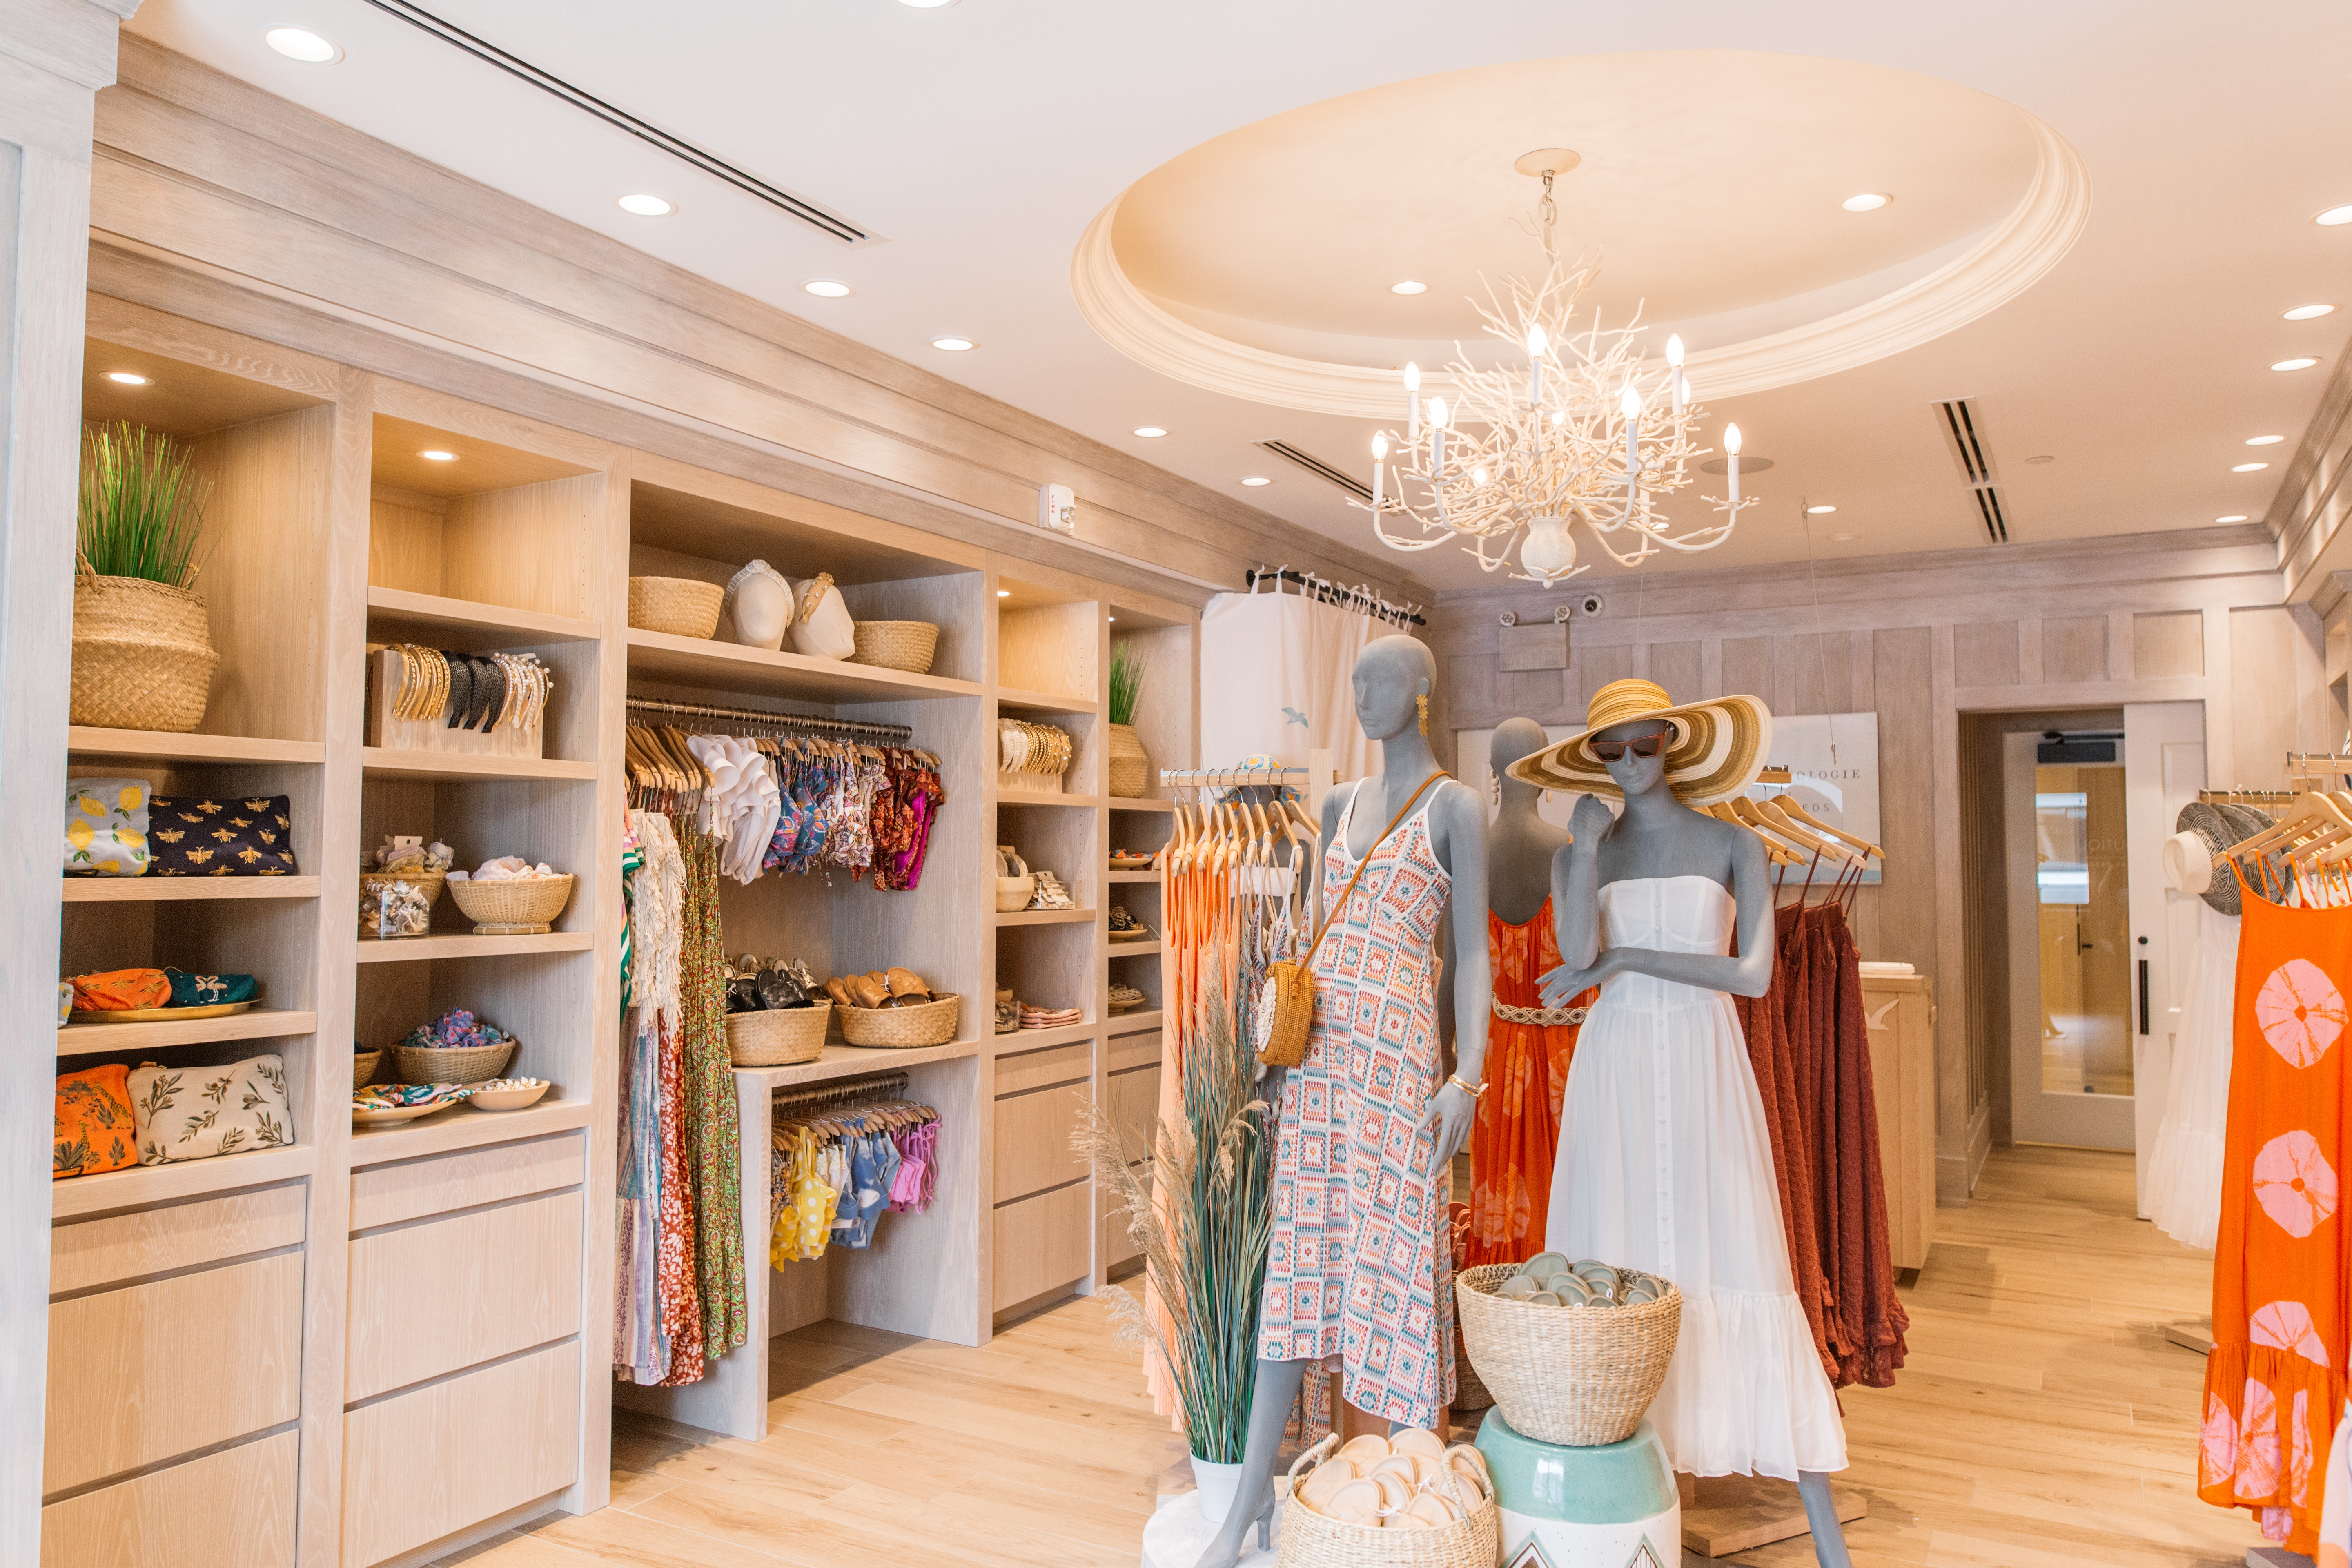 Anthropologie\'s new pop-up store inside The Reeds at Shelter Haven, a luxury hotel located on the Jersey Shore. Anthropologie.